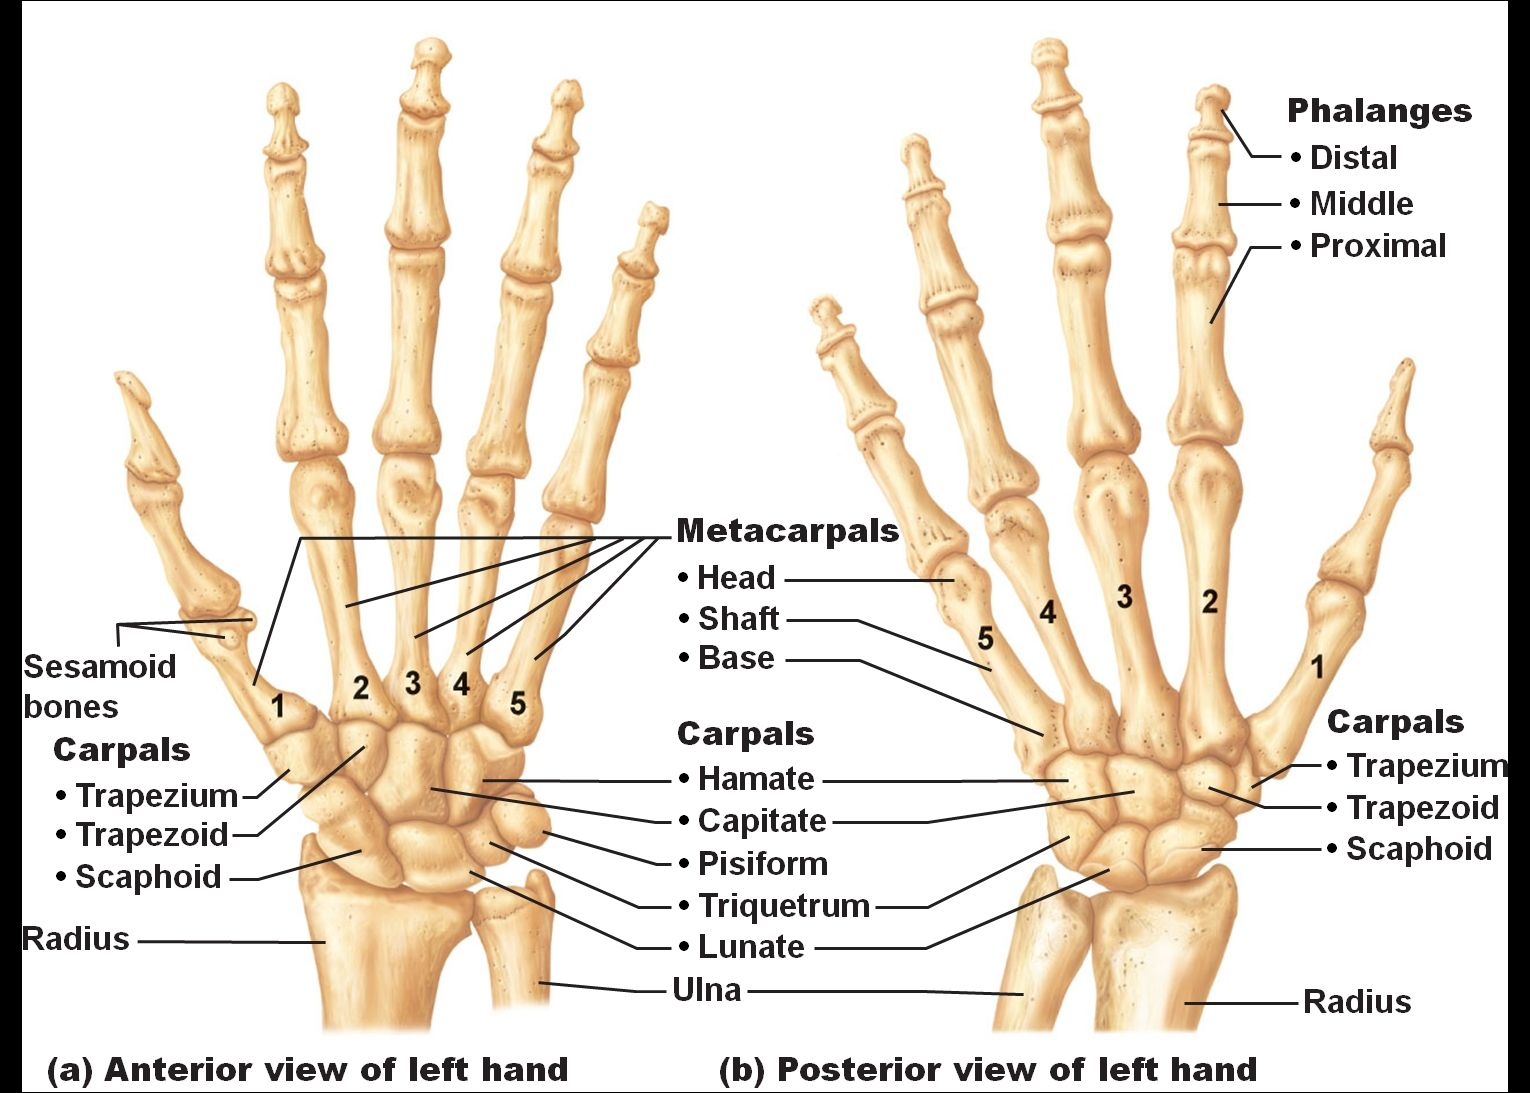 wrist and hand unlabeled diagram aus trailer plug wiring bone photos human right structure